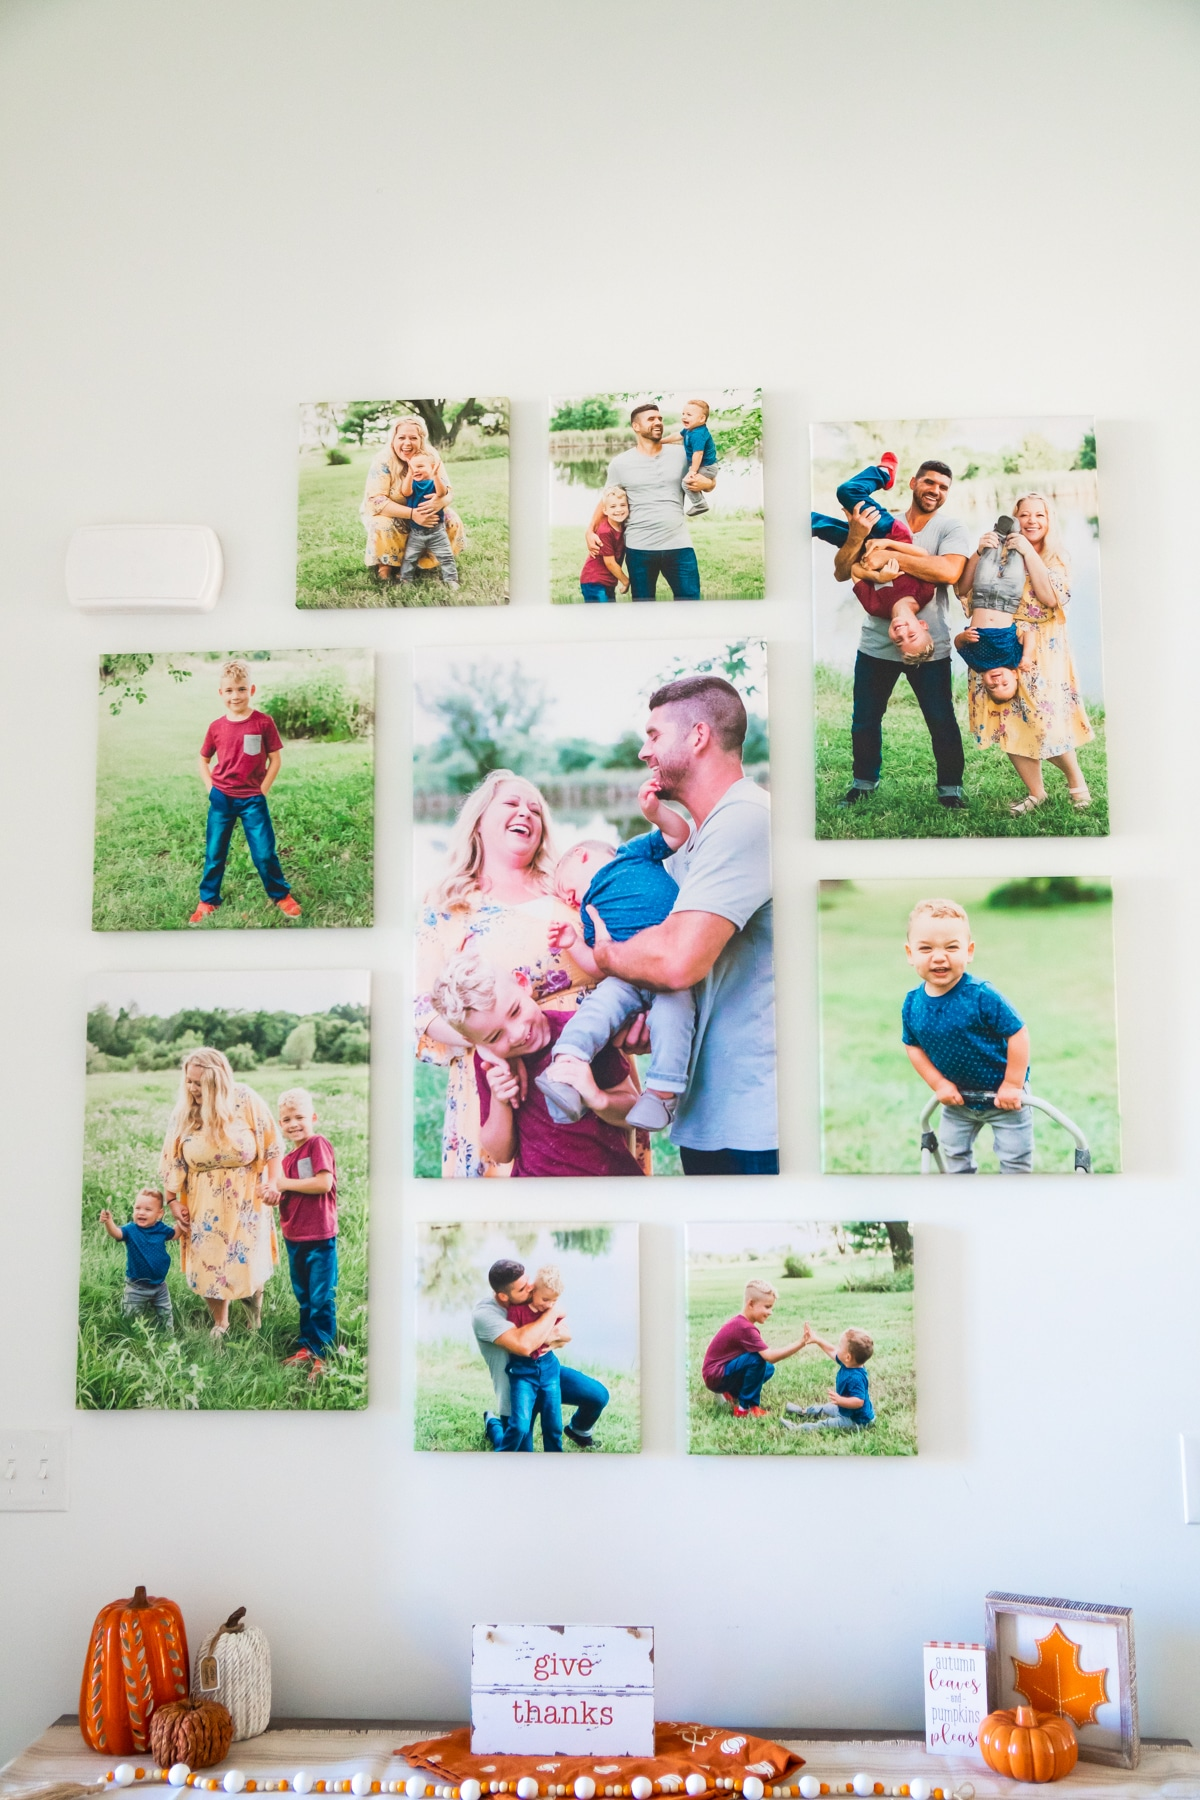 DIY photo wall made with canvases above an entry table